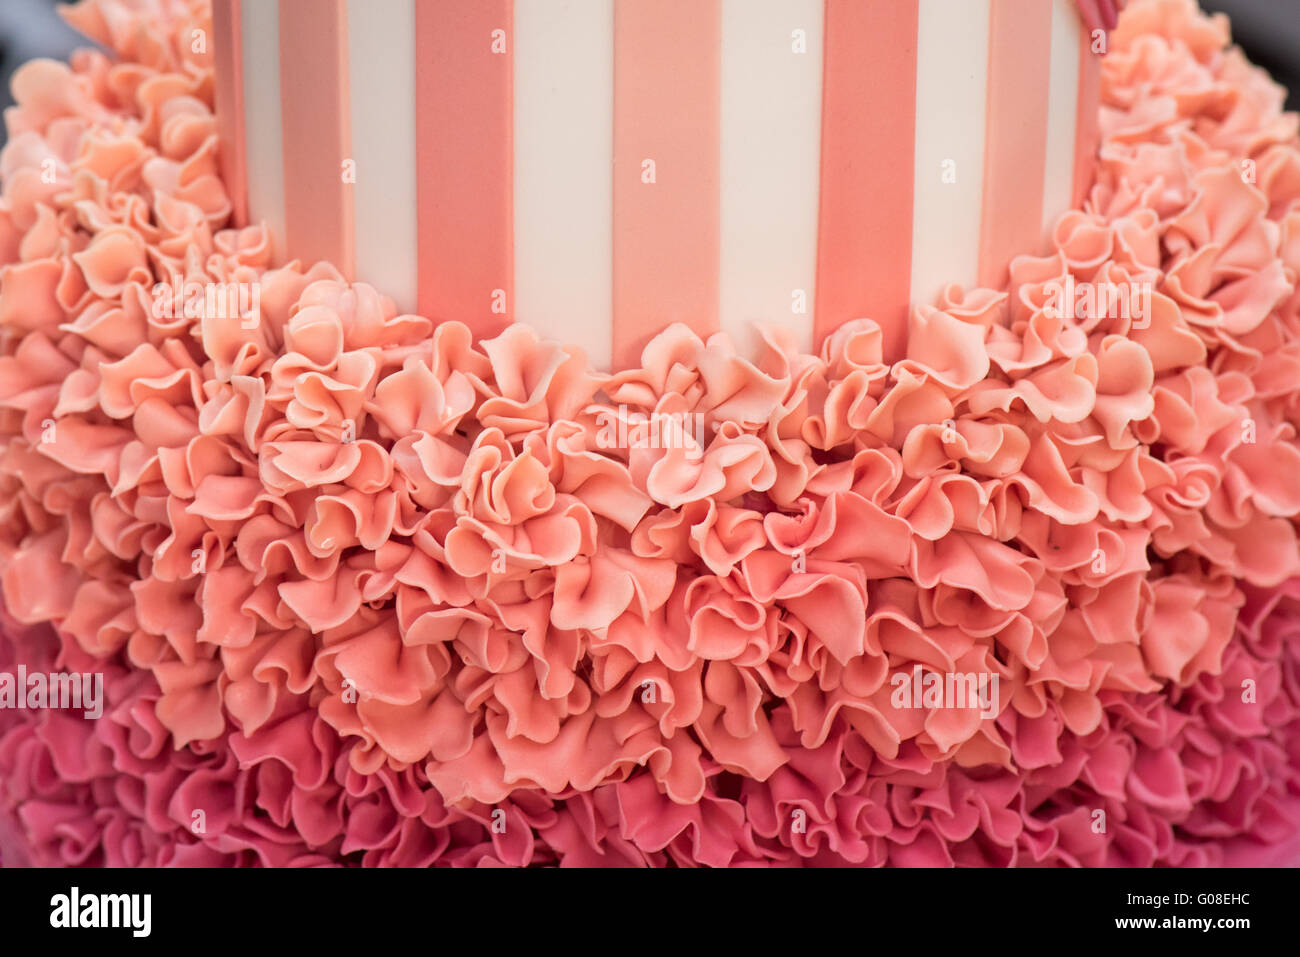 Icing Cake Frills On Birthday Cake At Cake International The Stock